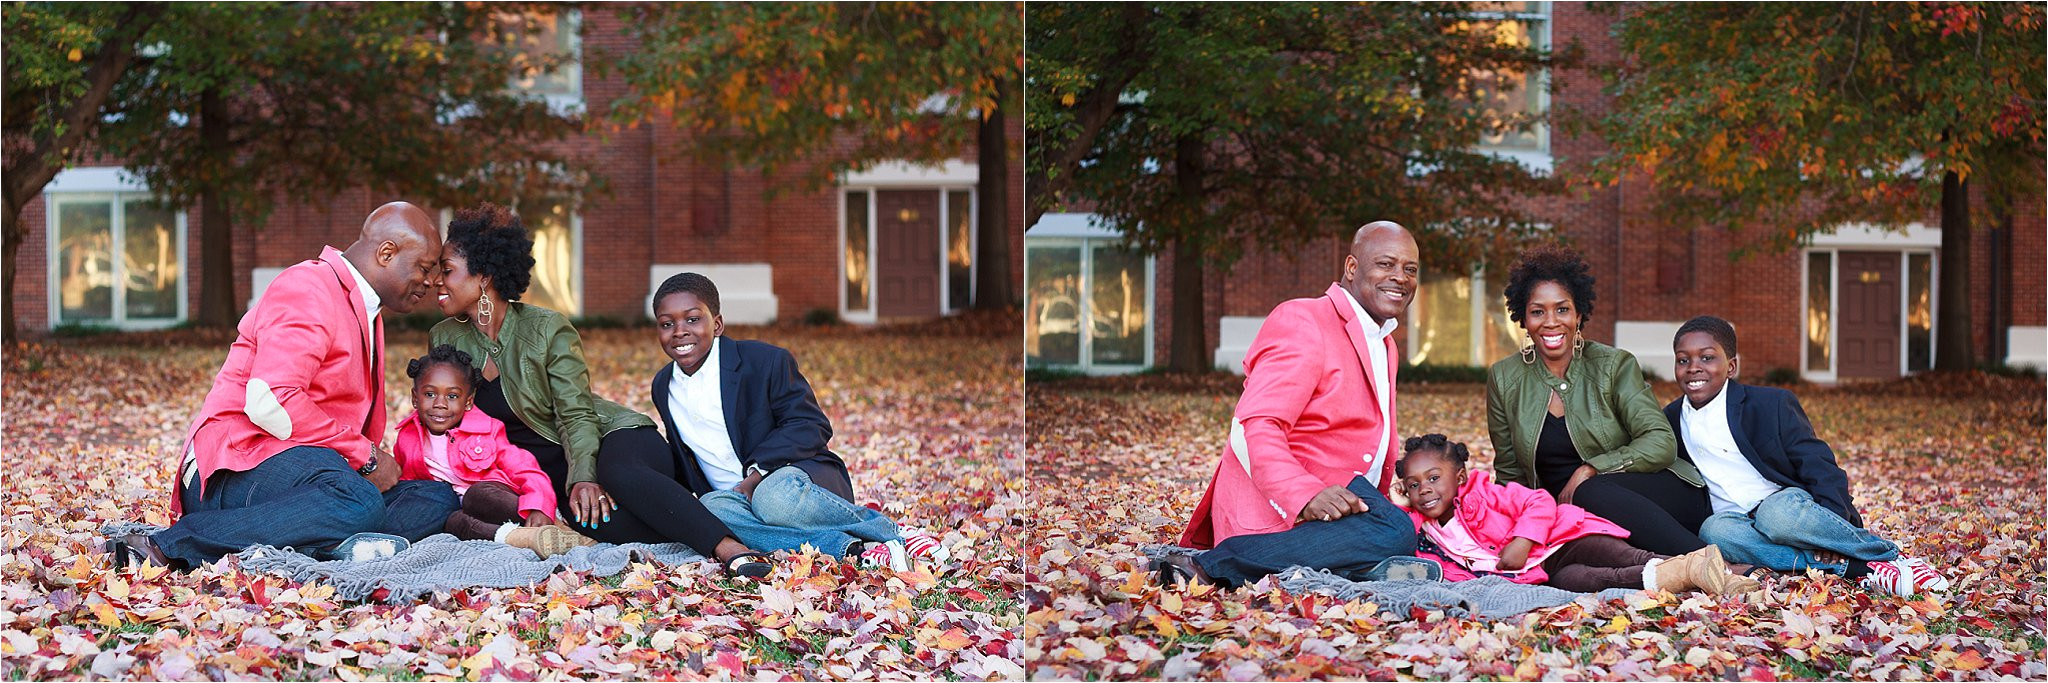 modern family pictures moder family poses fall family pictures 4 jpg